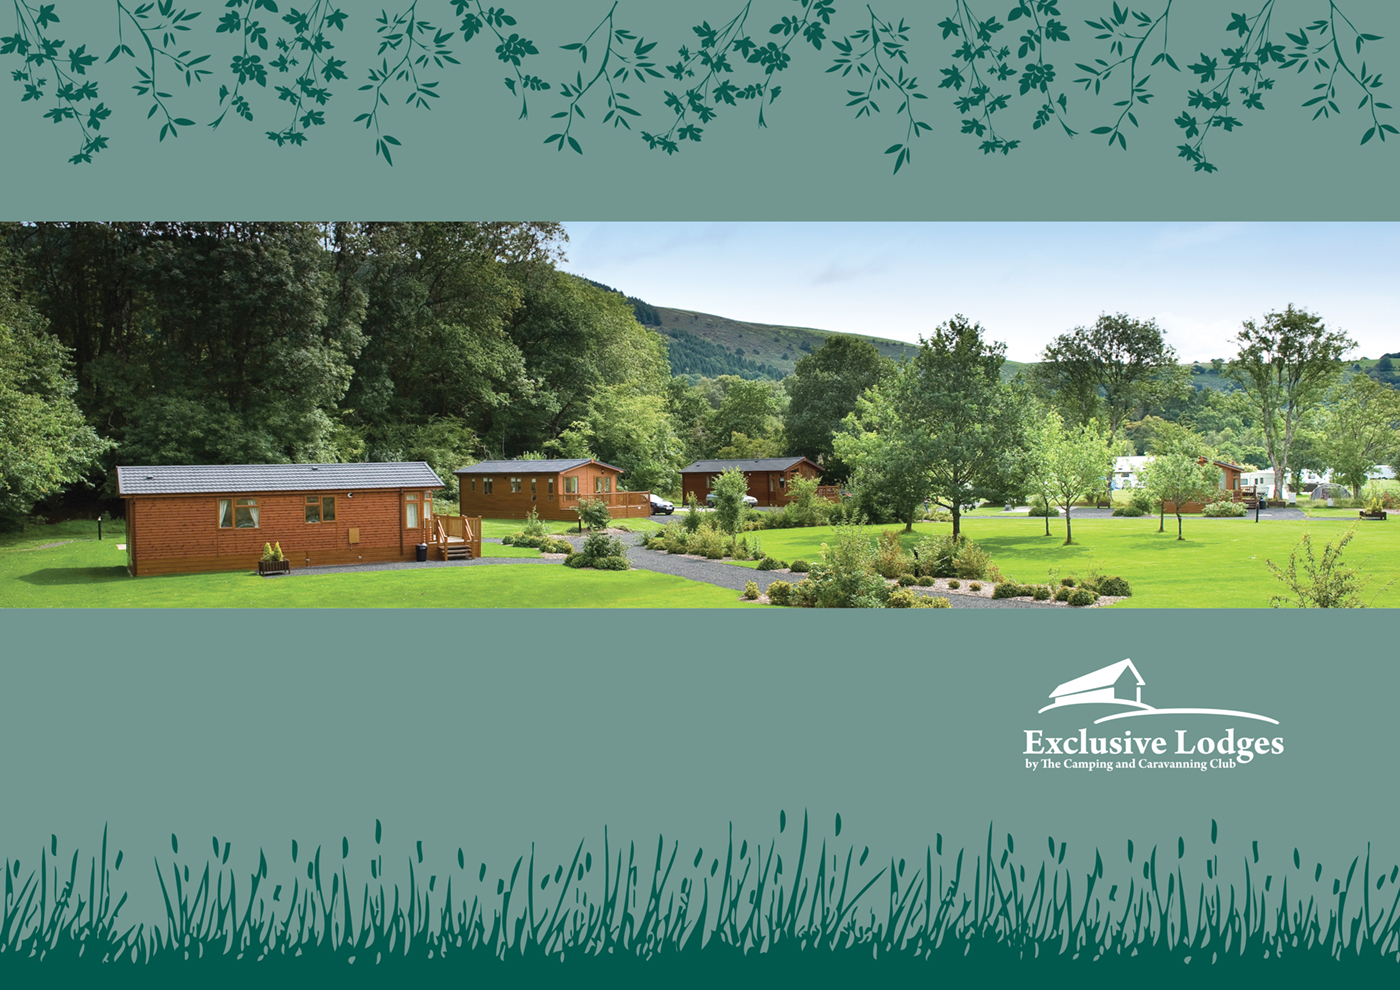 Exclusive Lodges brochure